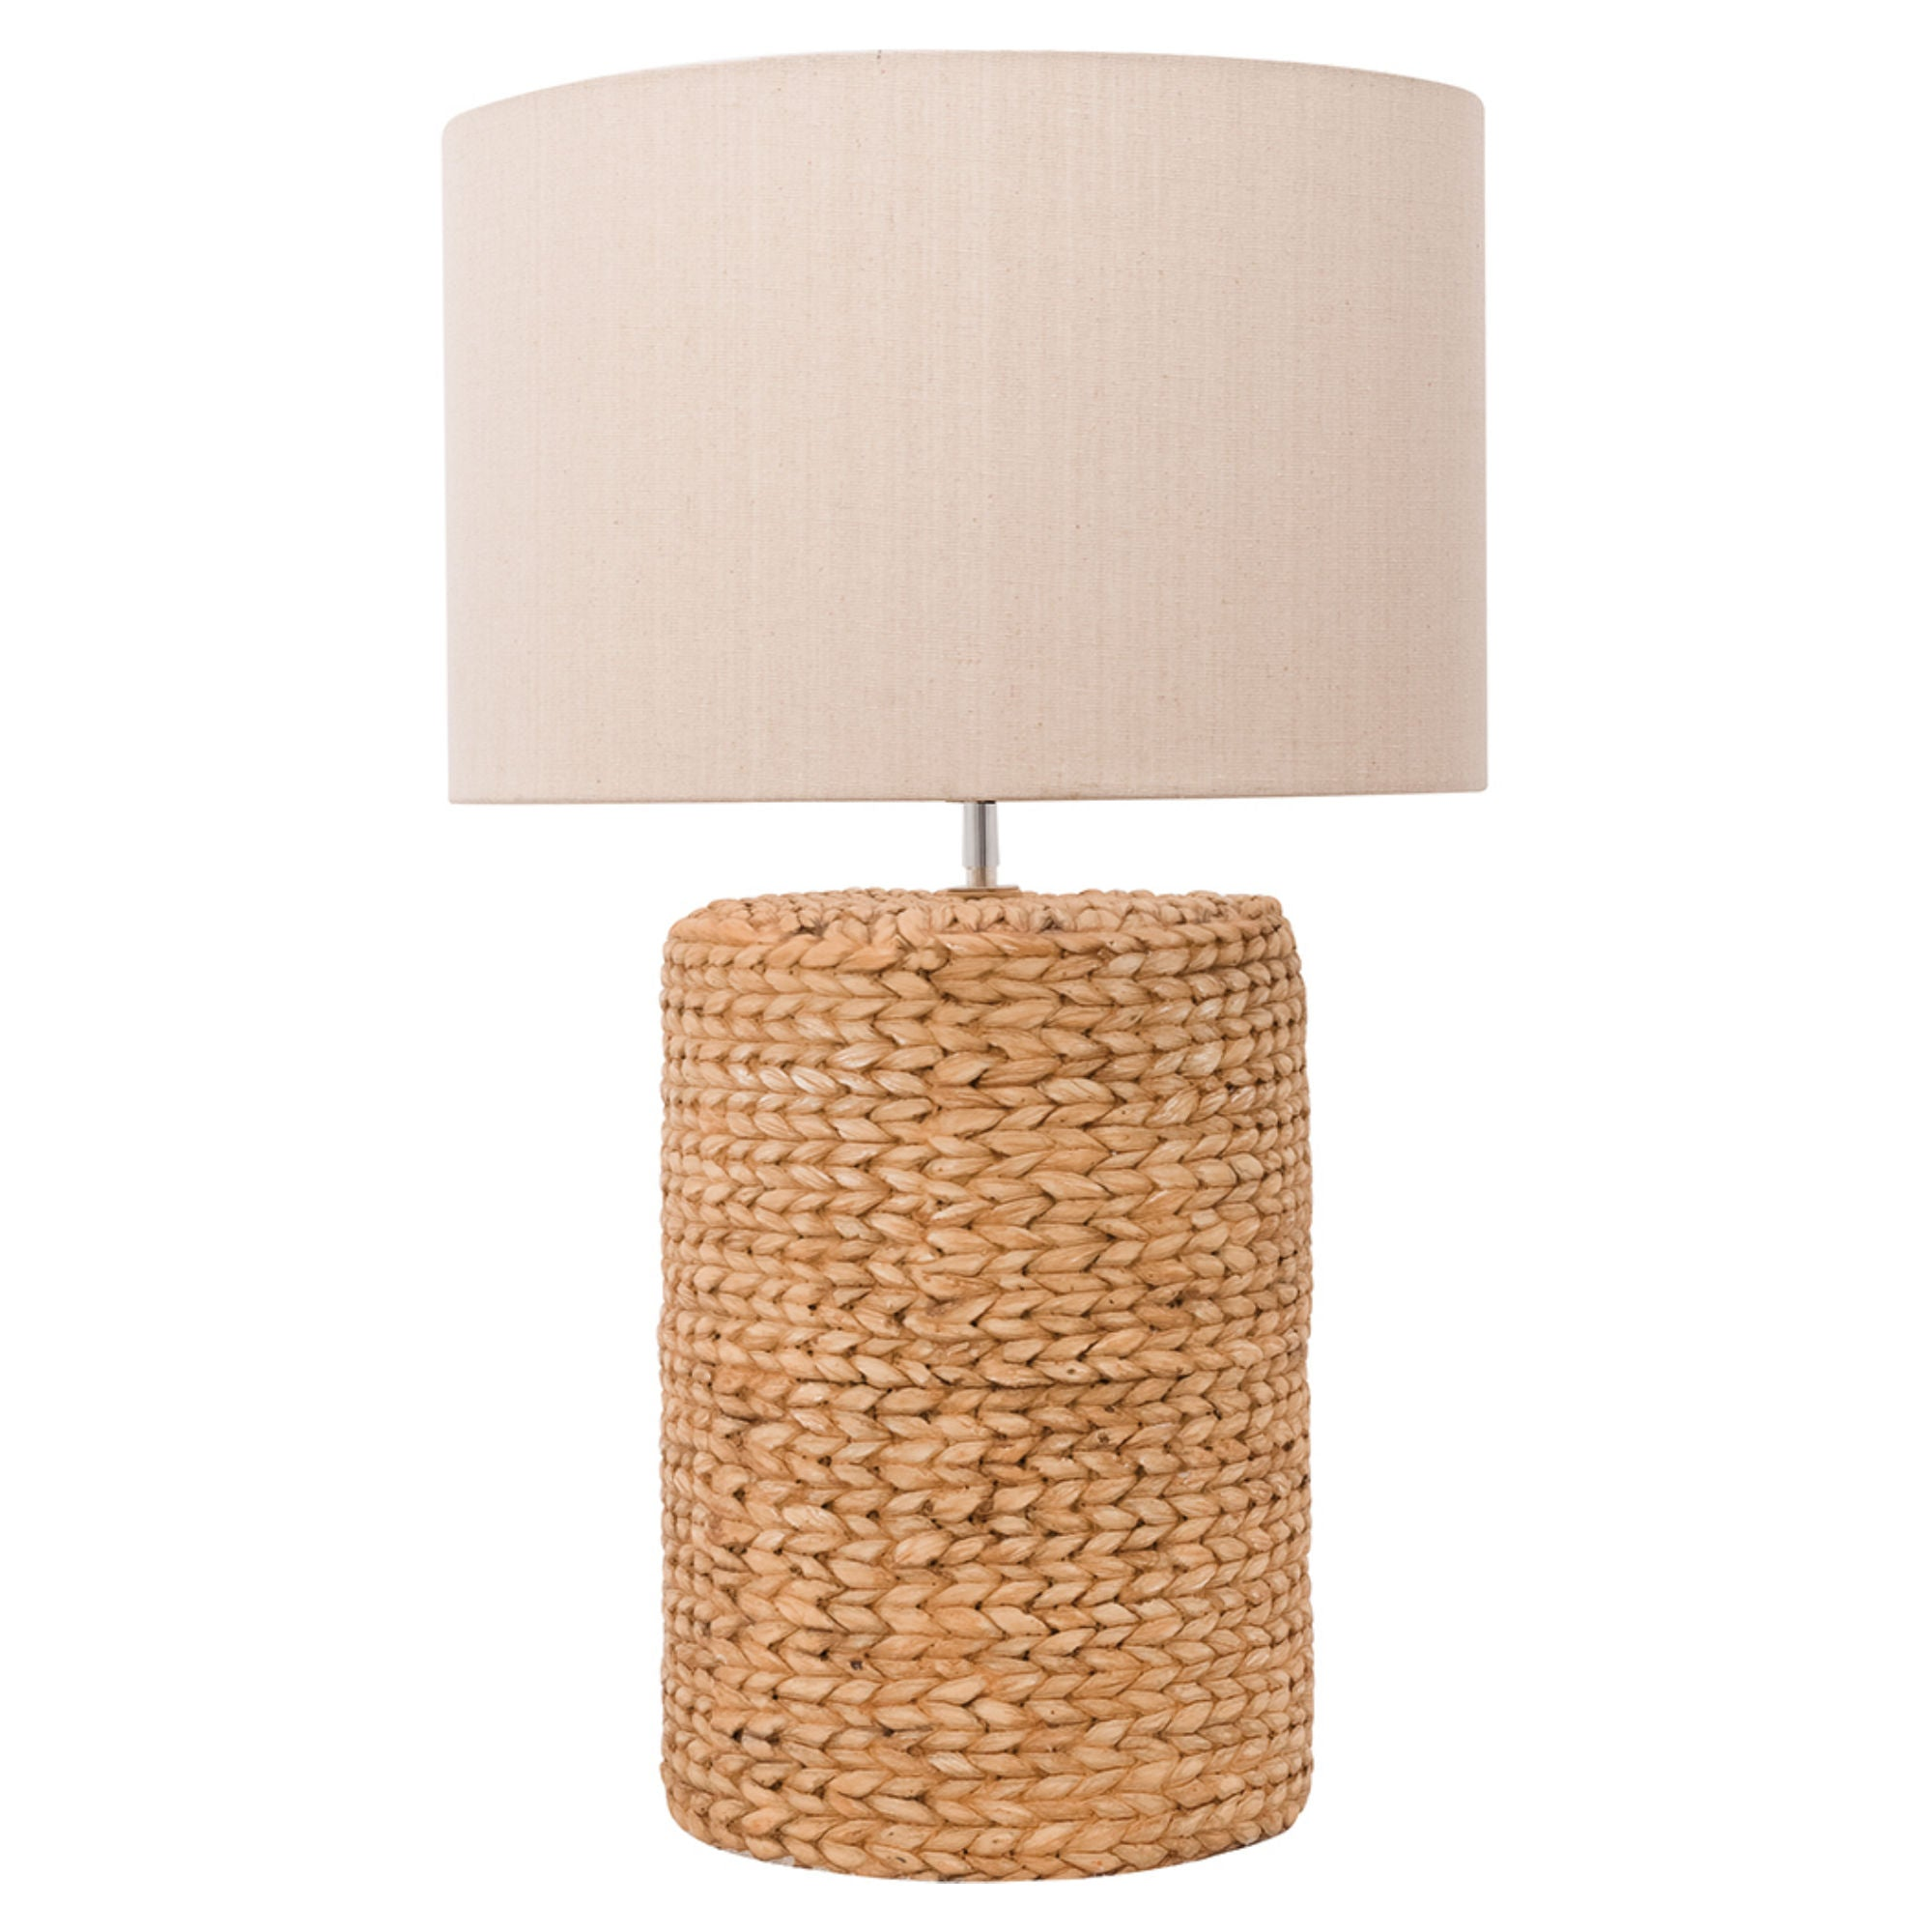 Batela Giftware-Lamp-Large Glass Table Lamp with Rope Finish